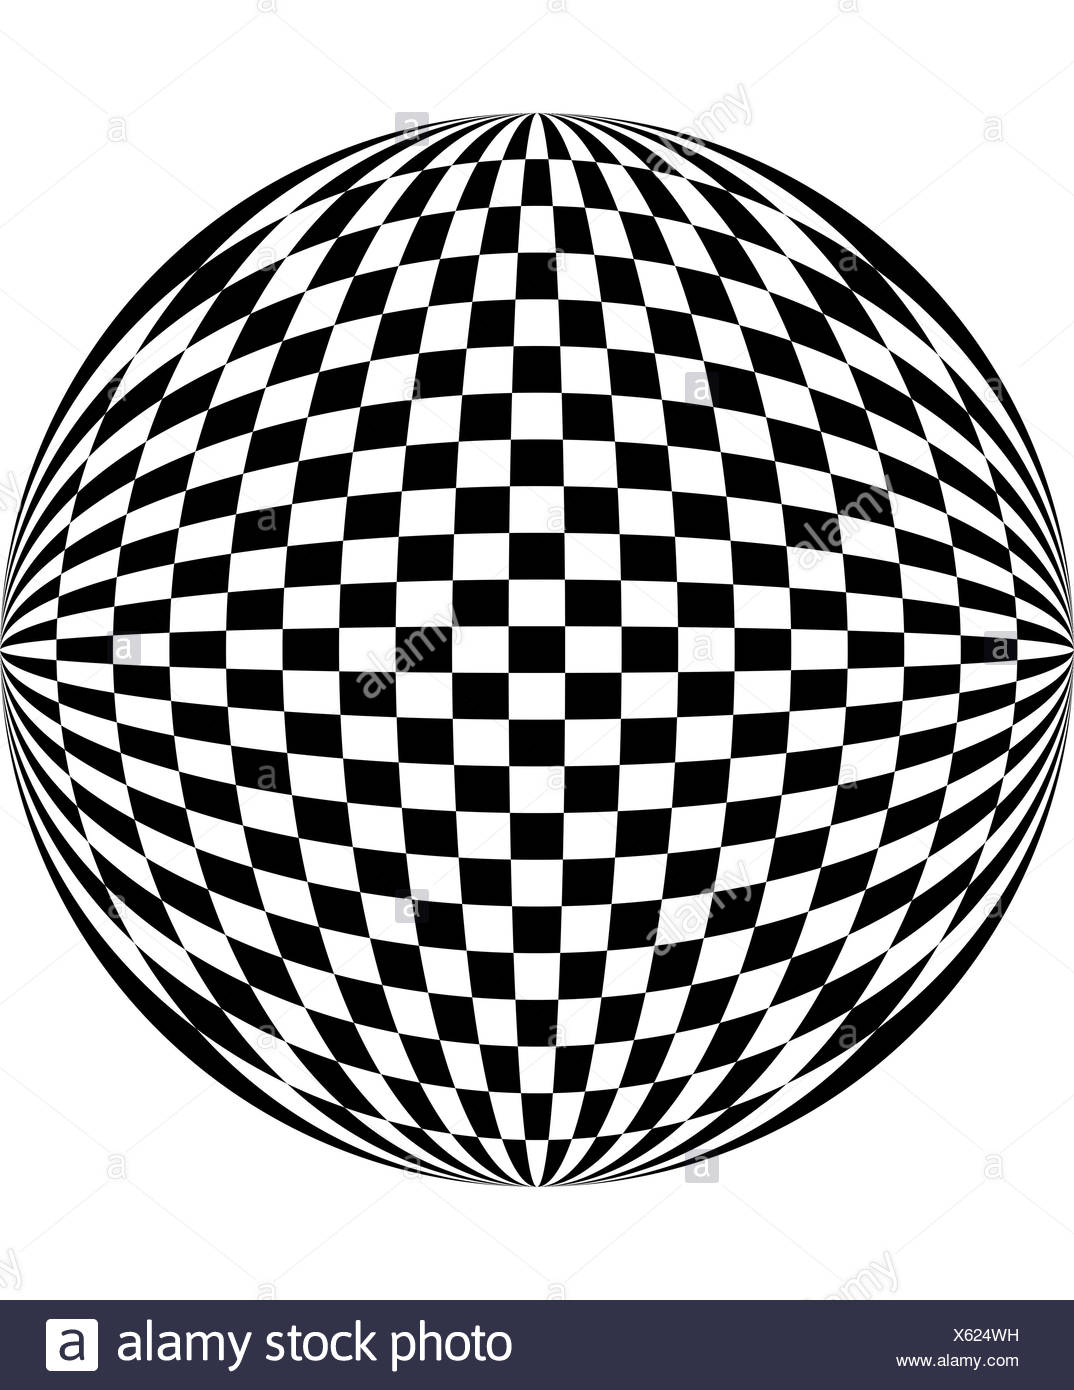 circle chess chessboard chess board pattern design shaping formation